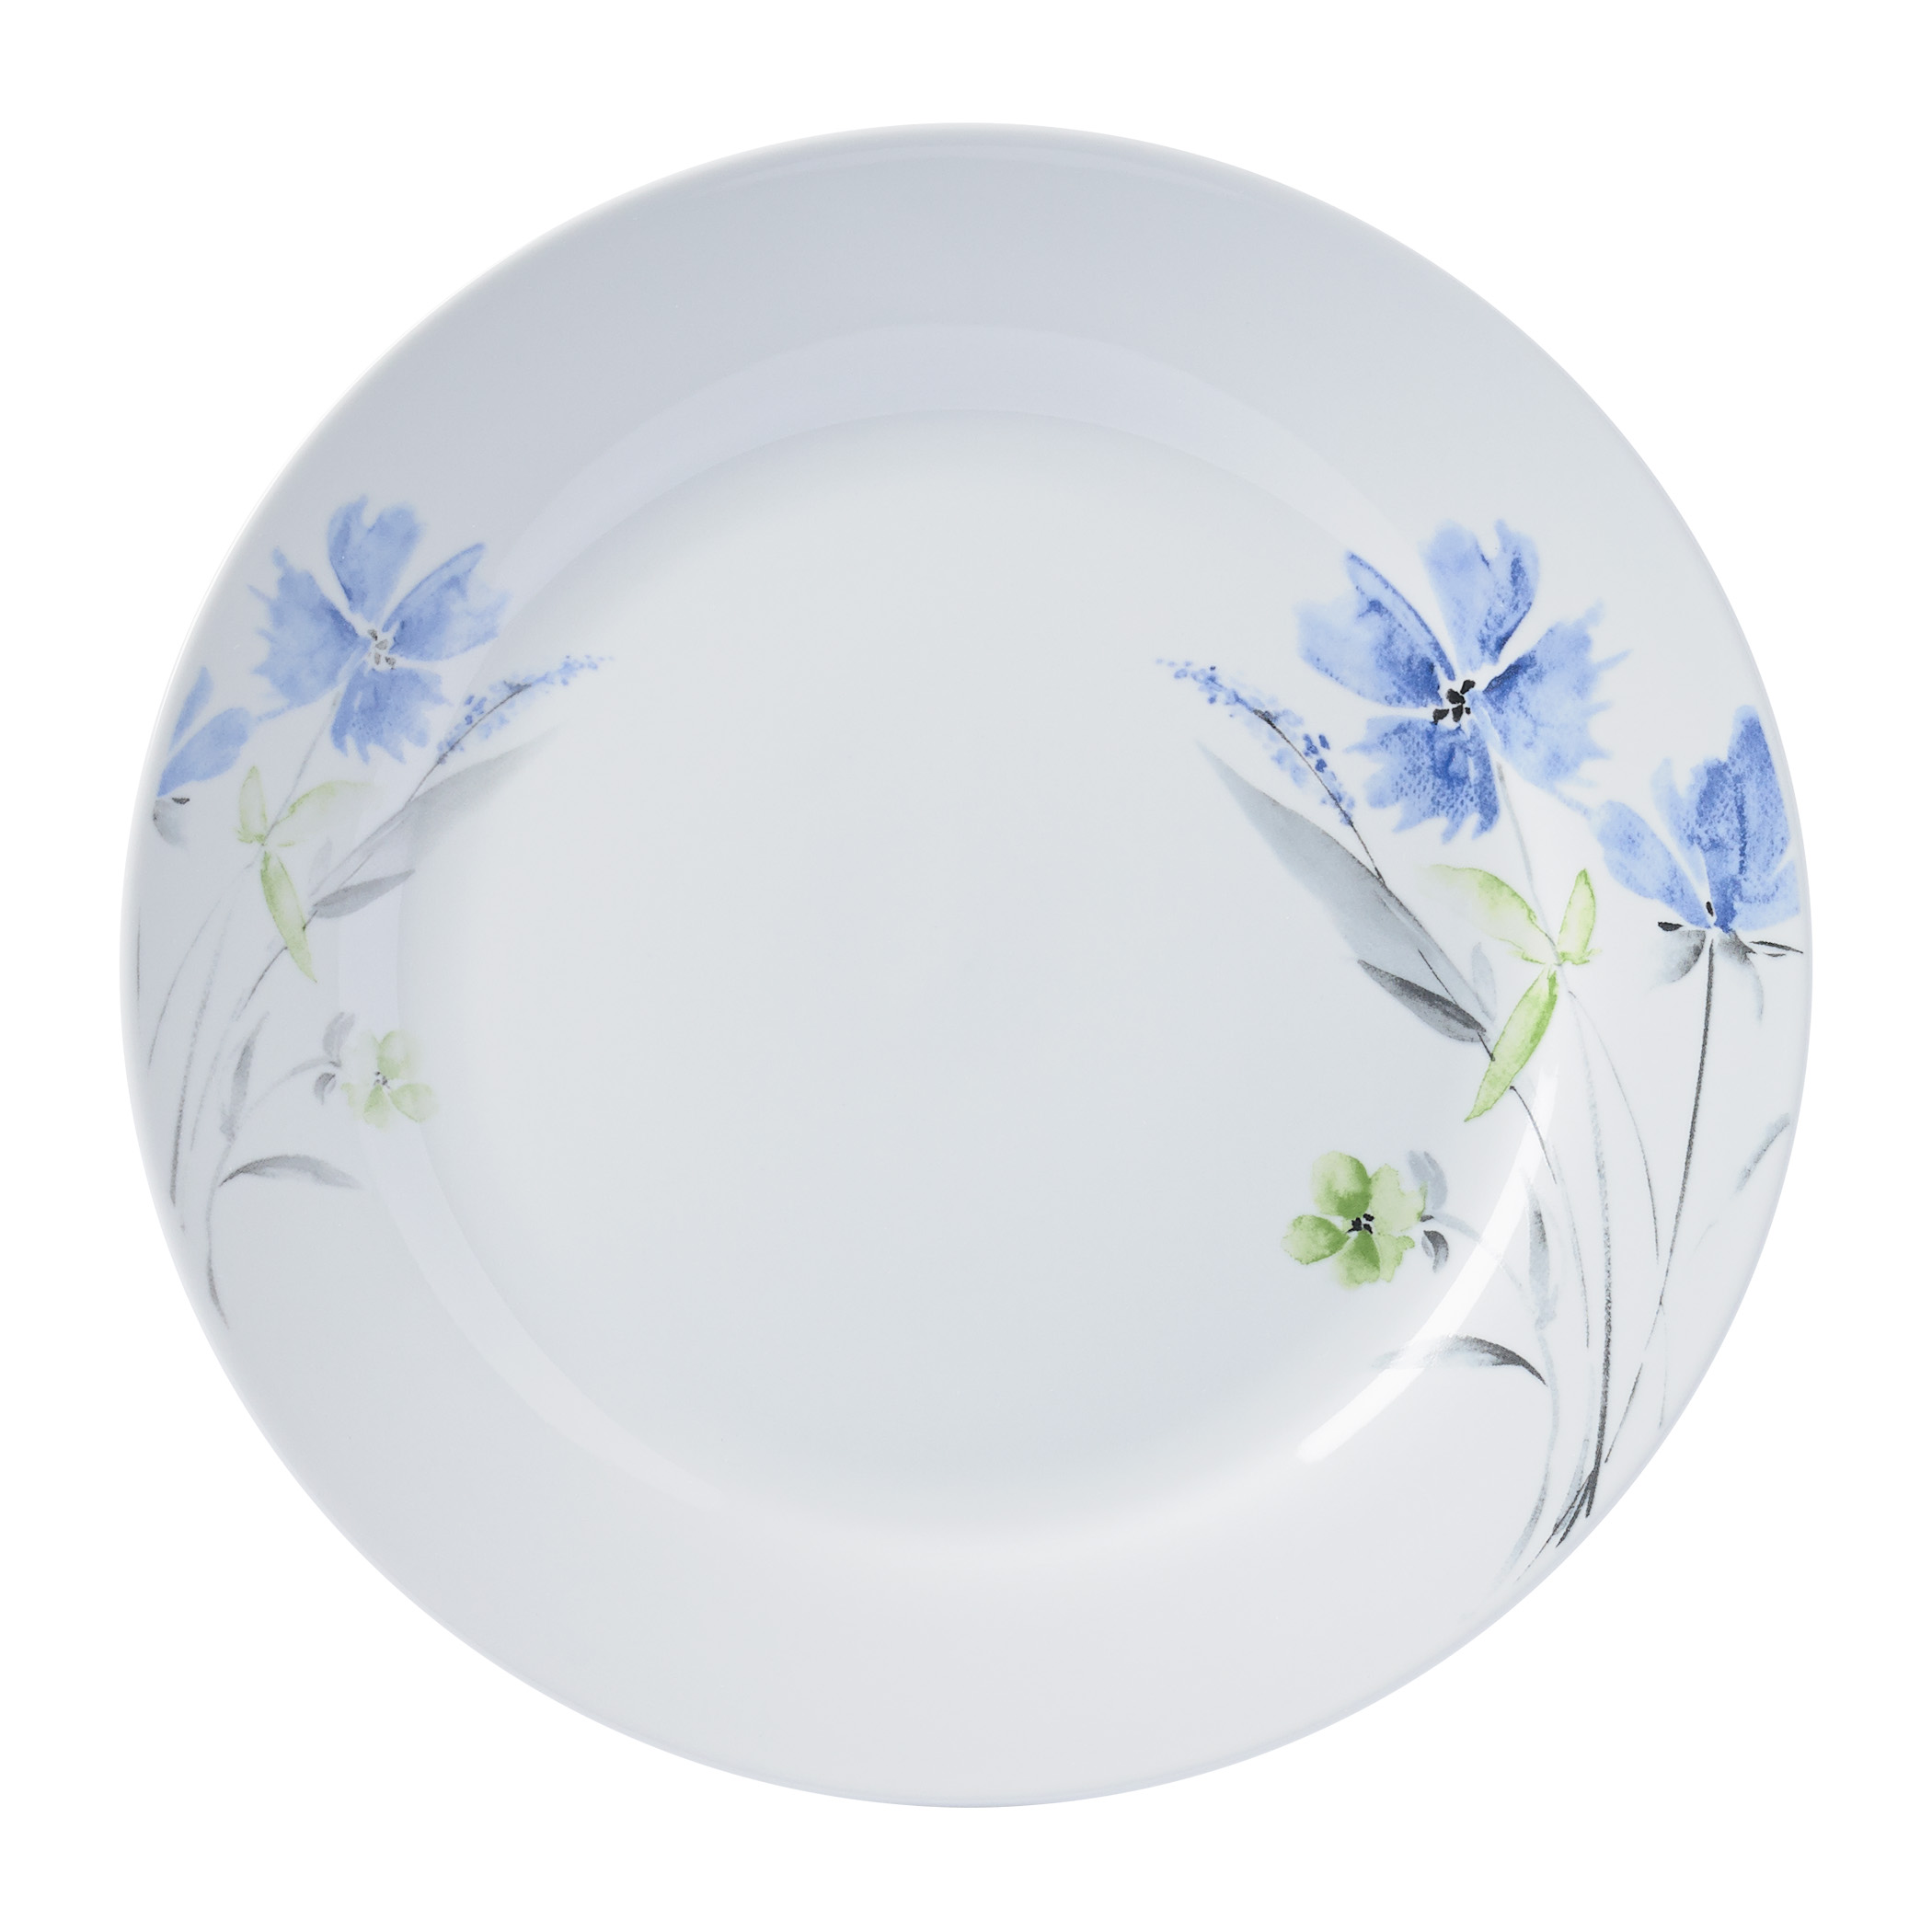 Delightful ... Tabletops Gallery · TTU 83700 EC 16 Piece Porcelain Dinnerware Set By  Tabletops Gallery_1 ...